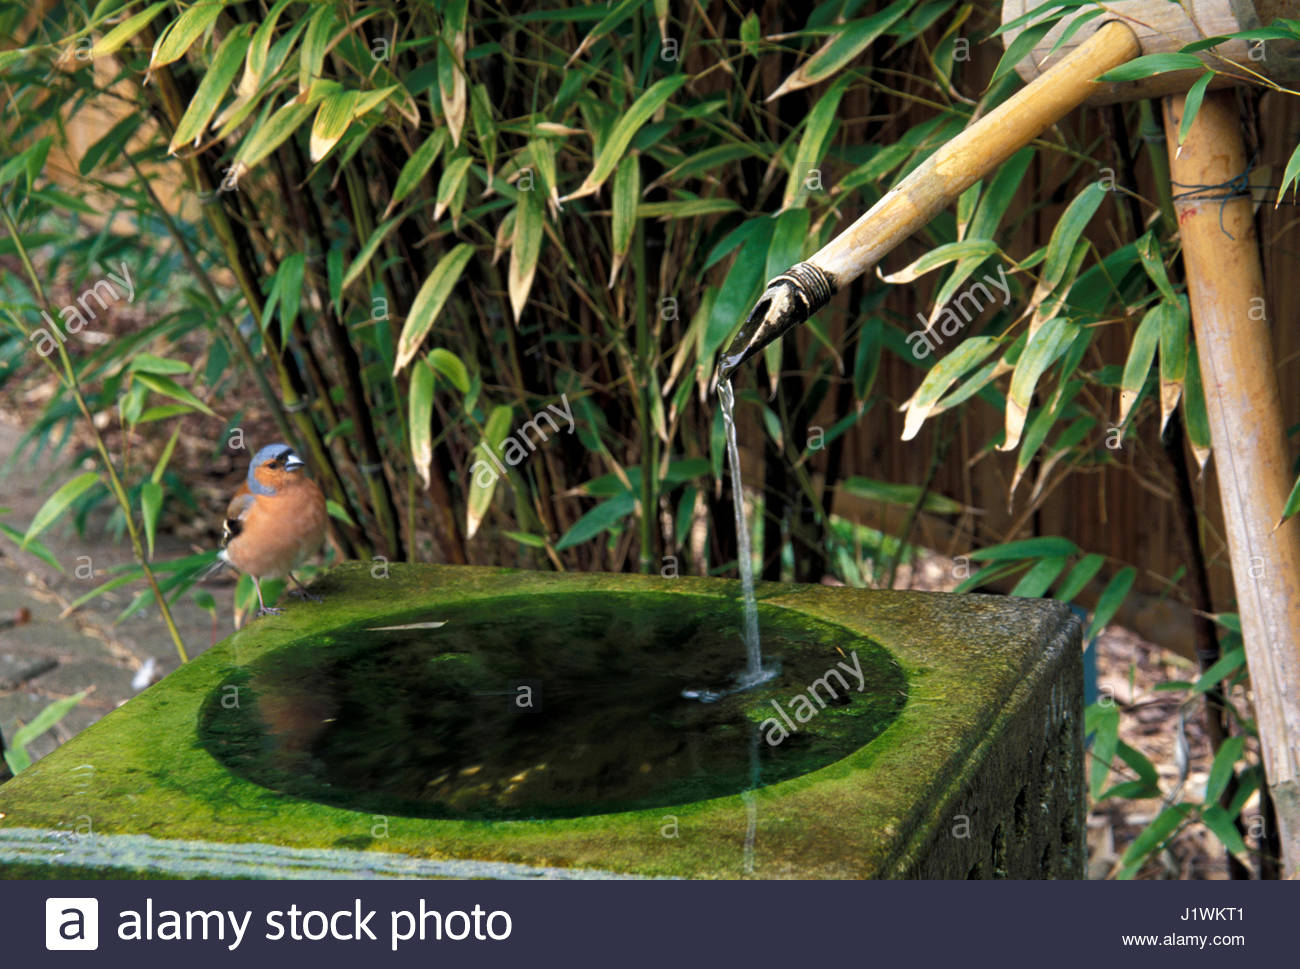 Japanese water feature stock photos japanese water for Japanese bamboo water feature